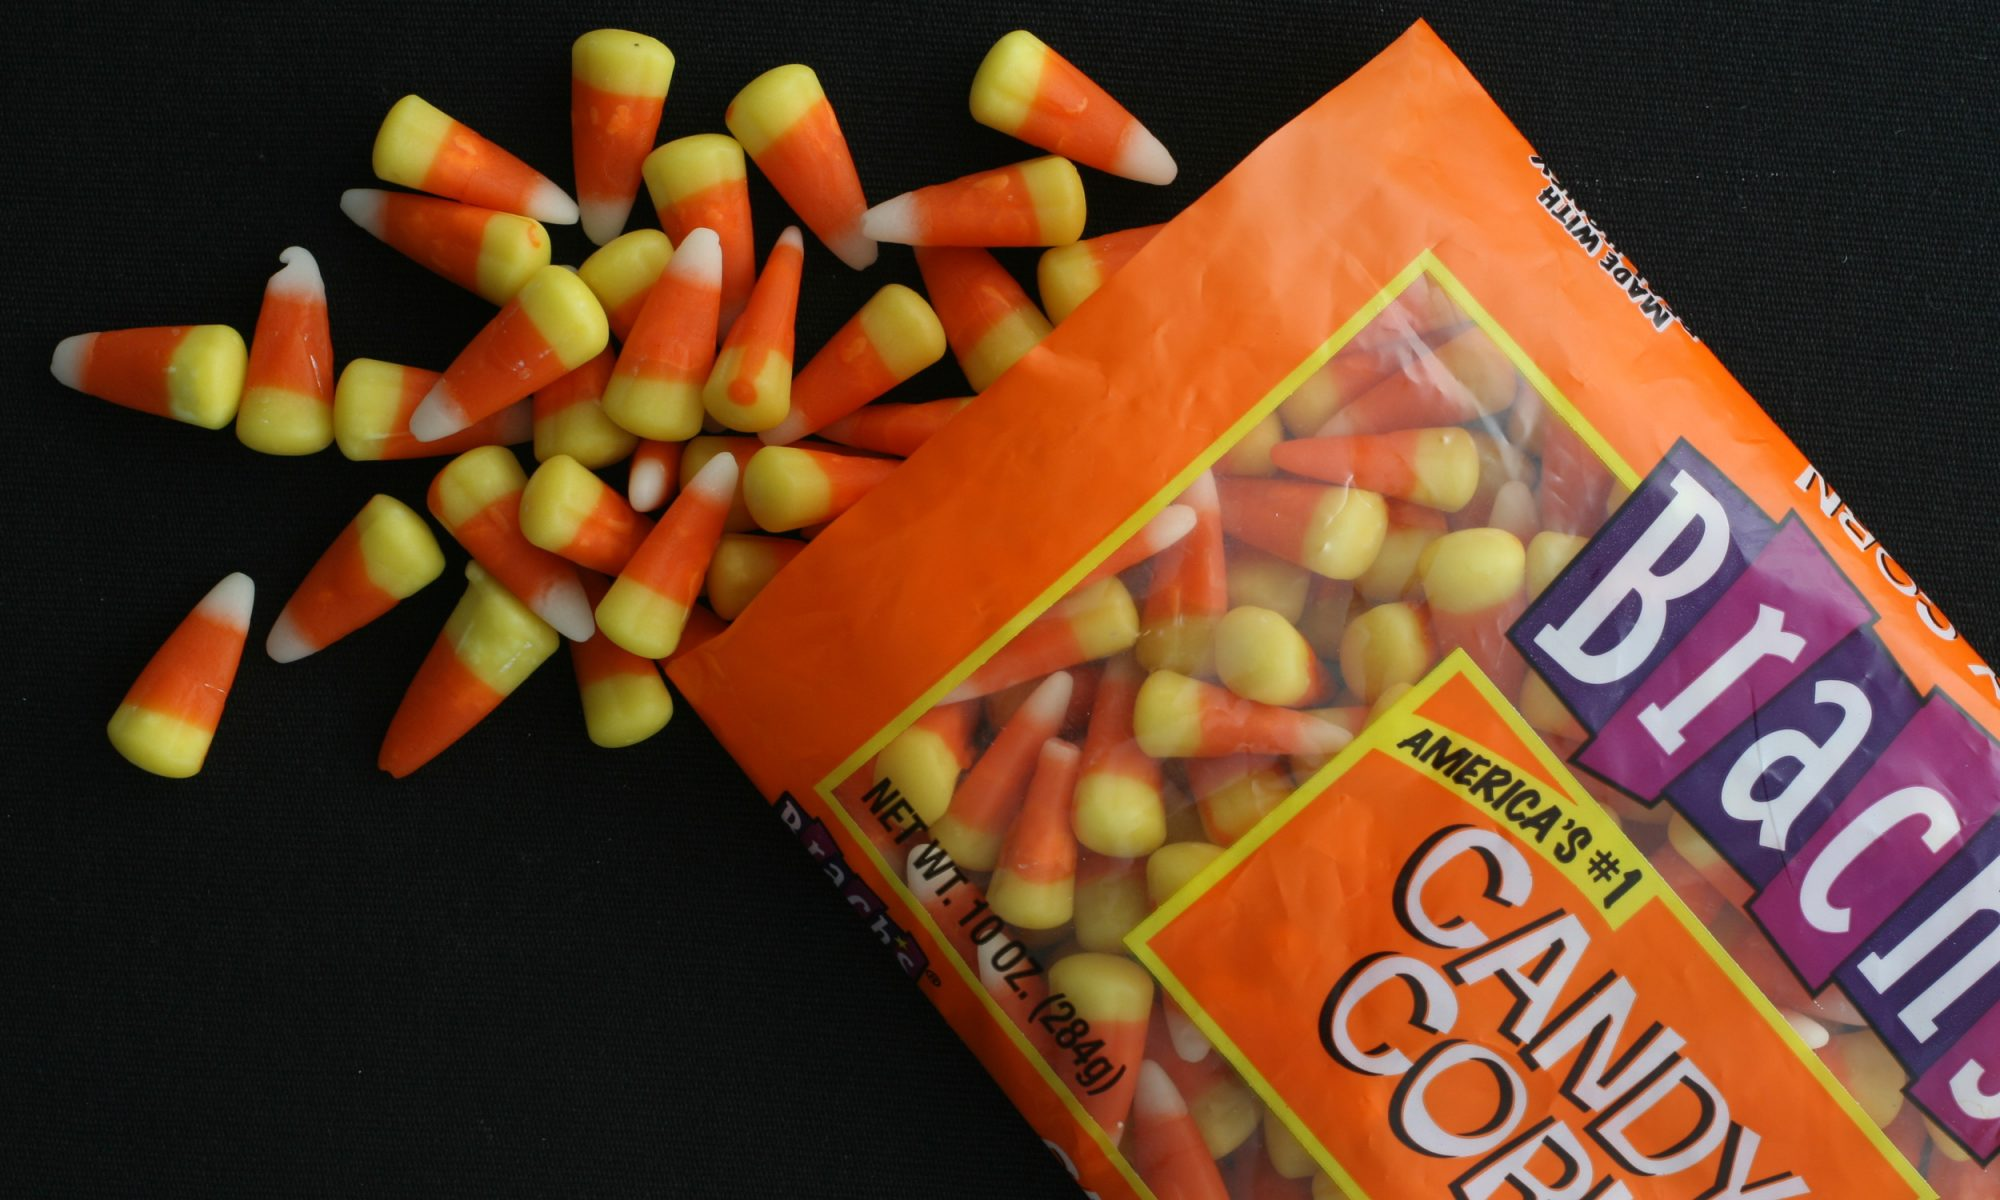 EC: Brach's Brunch Candy Corn Flavors Are Ready for You to Try